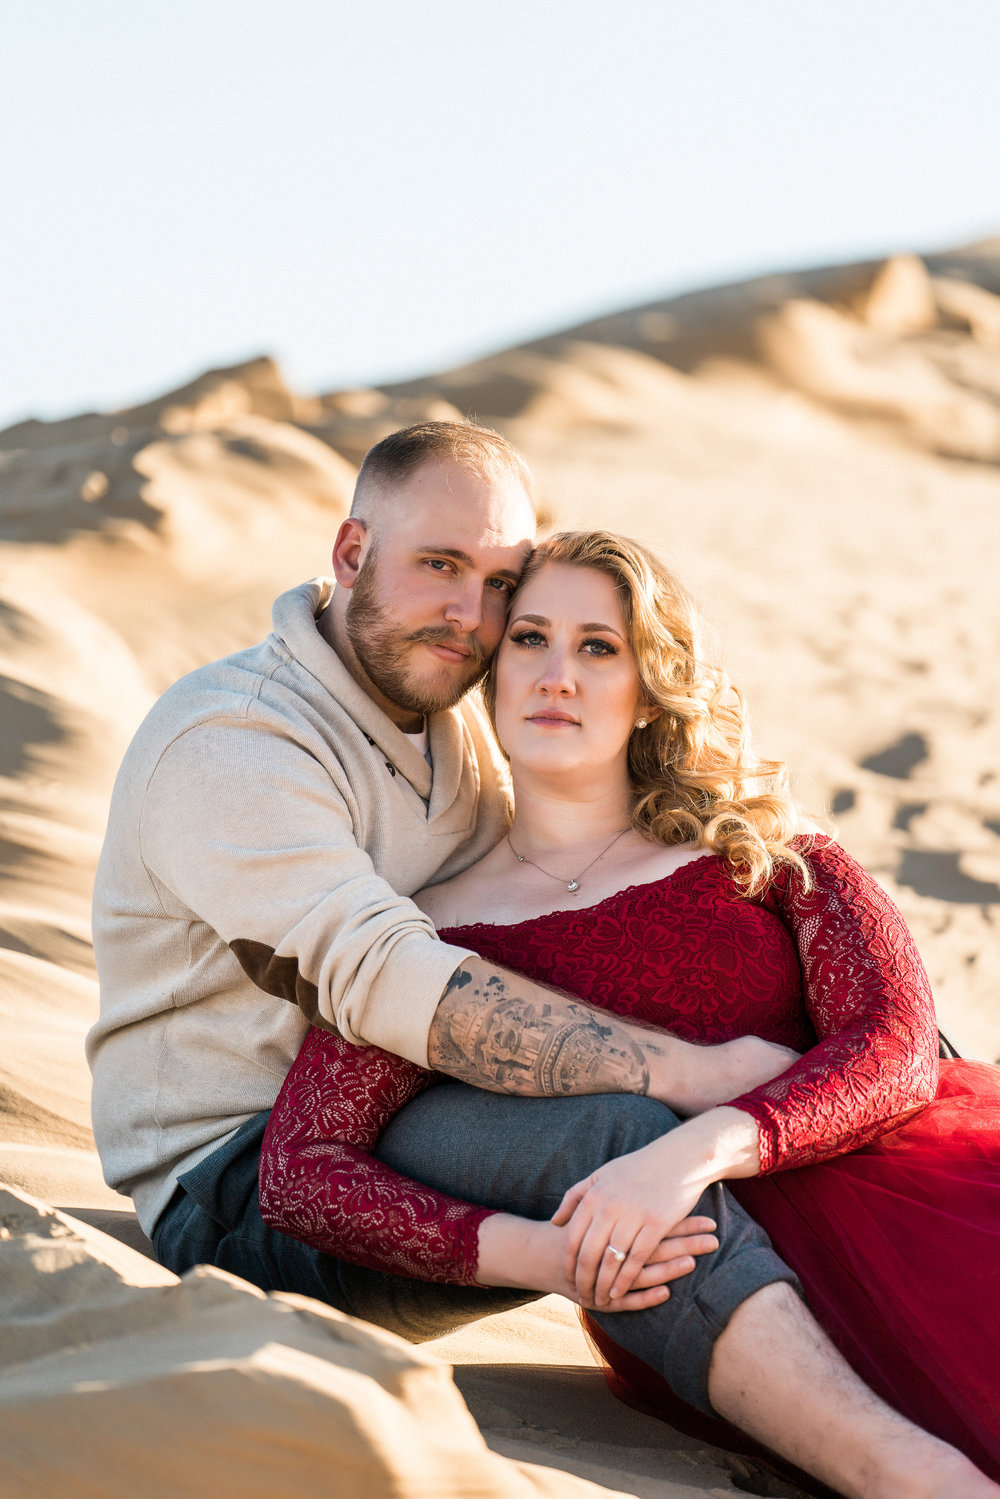 NewMexico-Sand-Dunes-Engagement-Carissa-and-Ben-1116.jpg